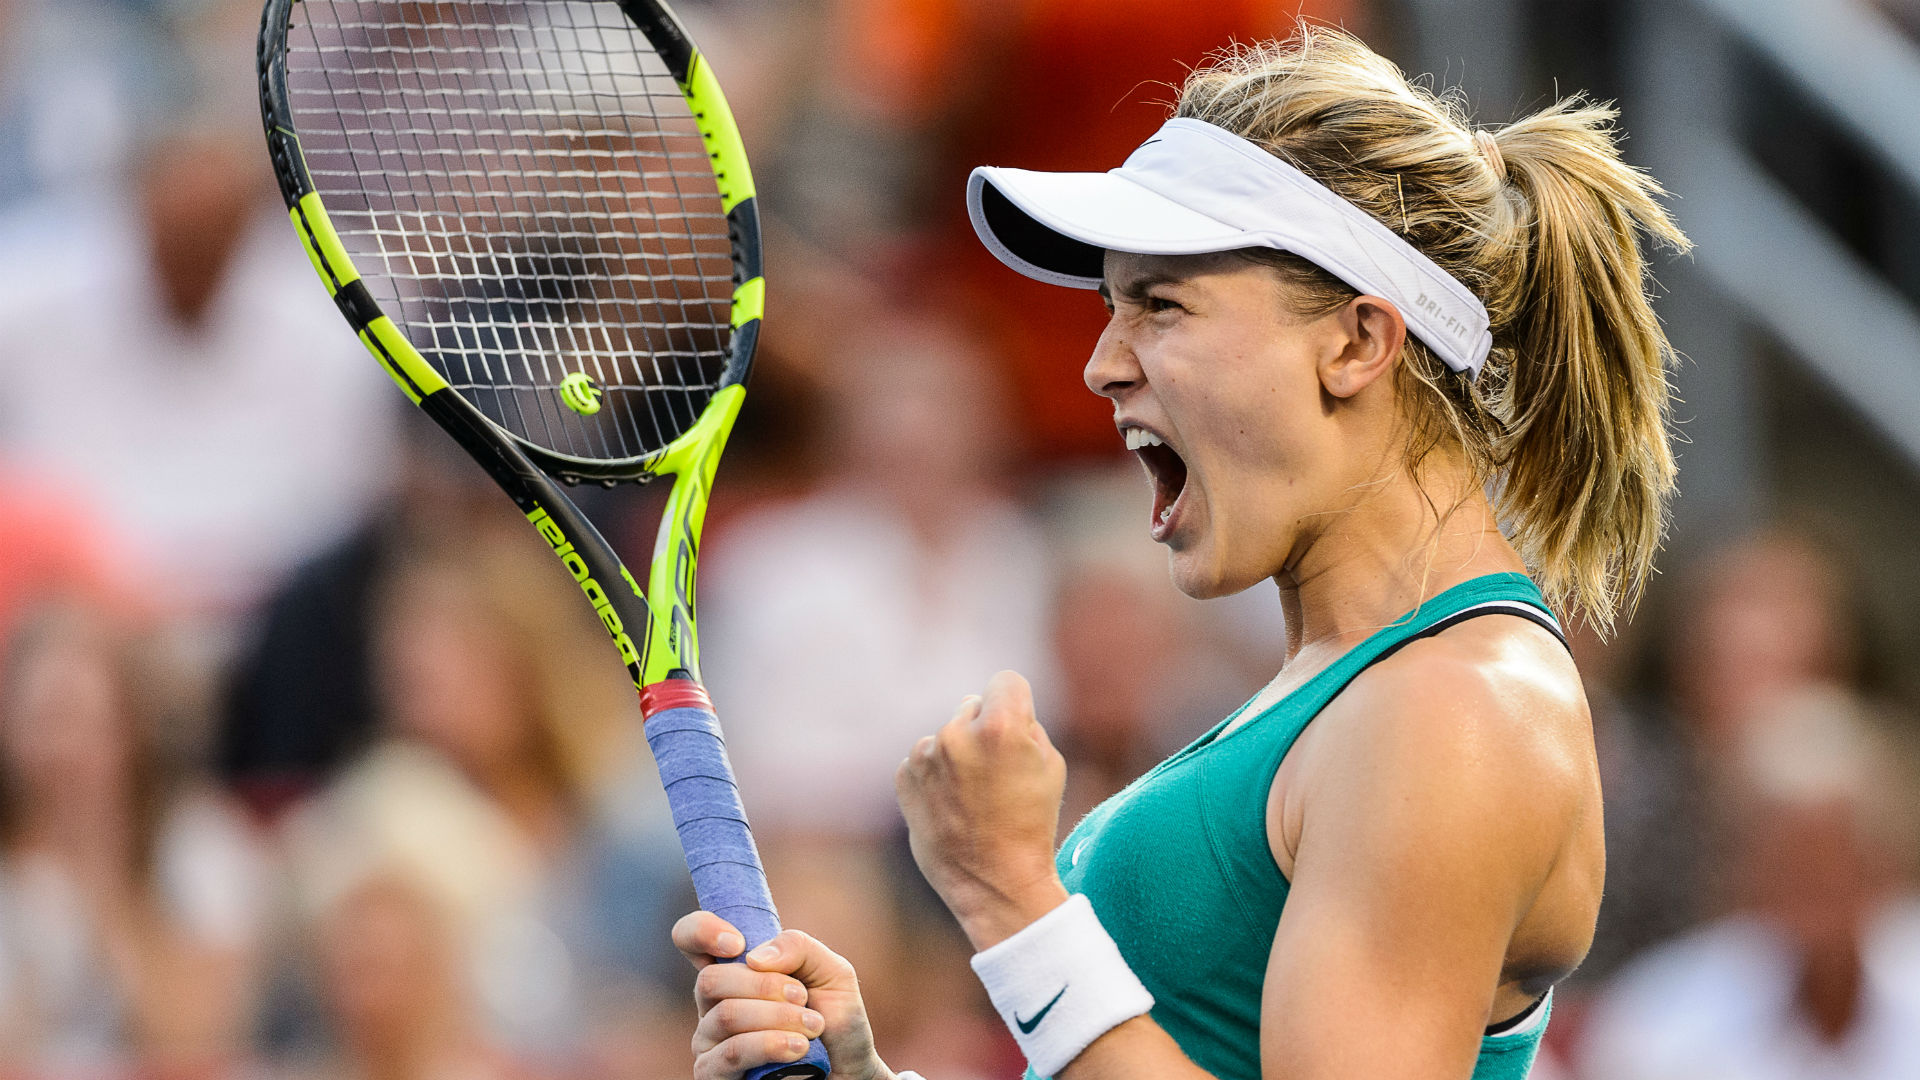 Bouchard's strong return halted by injury in Gstaad